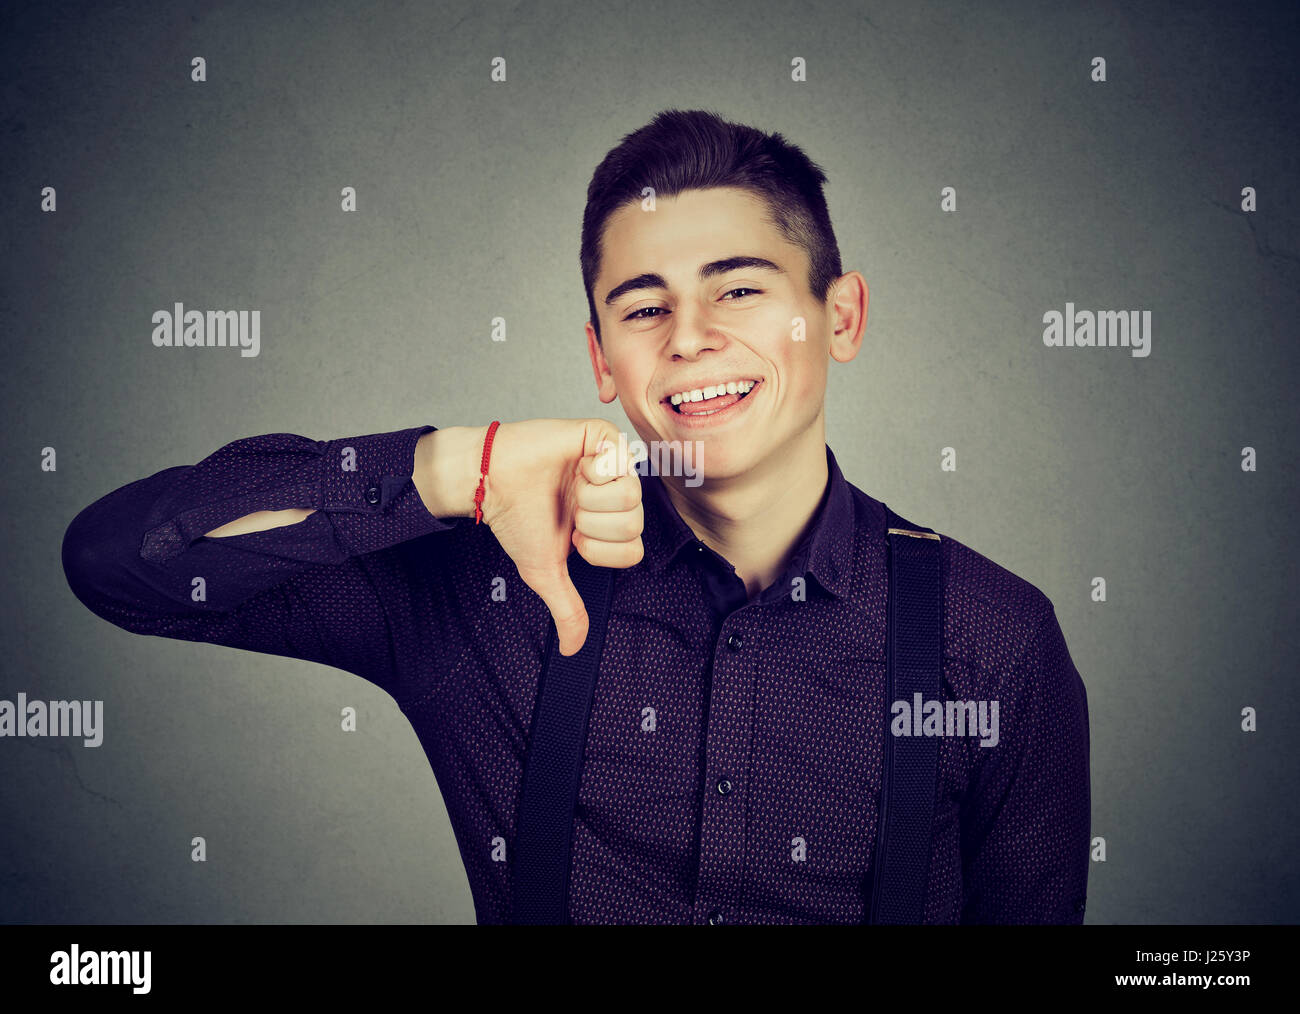 sarcastic man showing thumbs down hand gesture happy someone made mistake isolated on gray background. Human emotion, - Stock Image